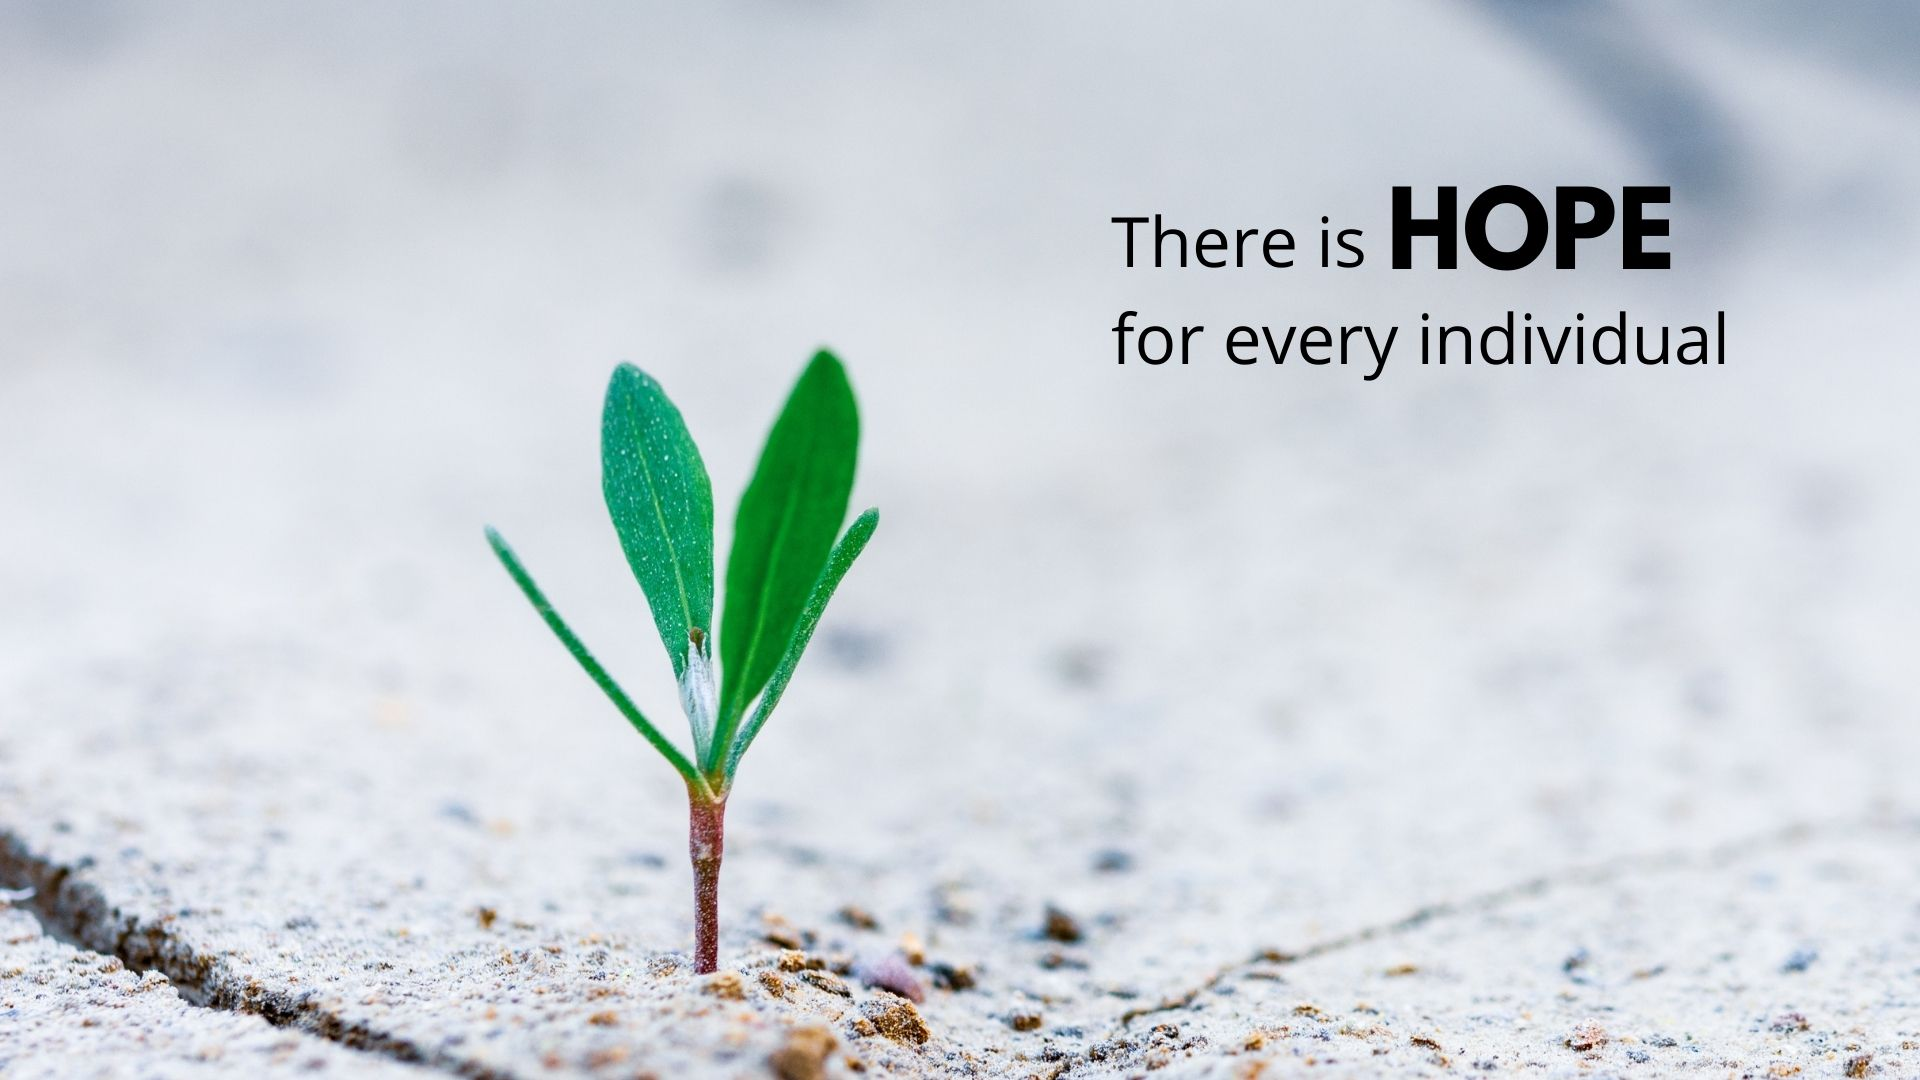 THERE IS HOPE website front page